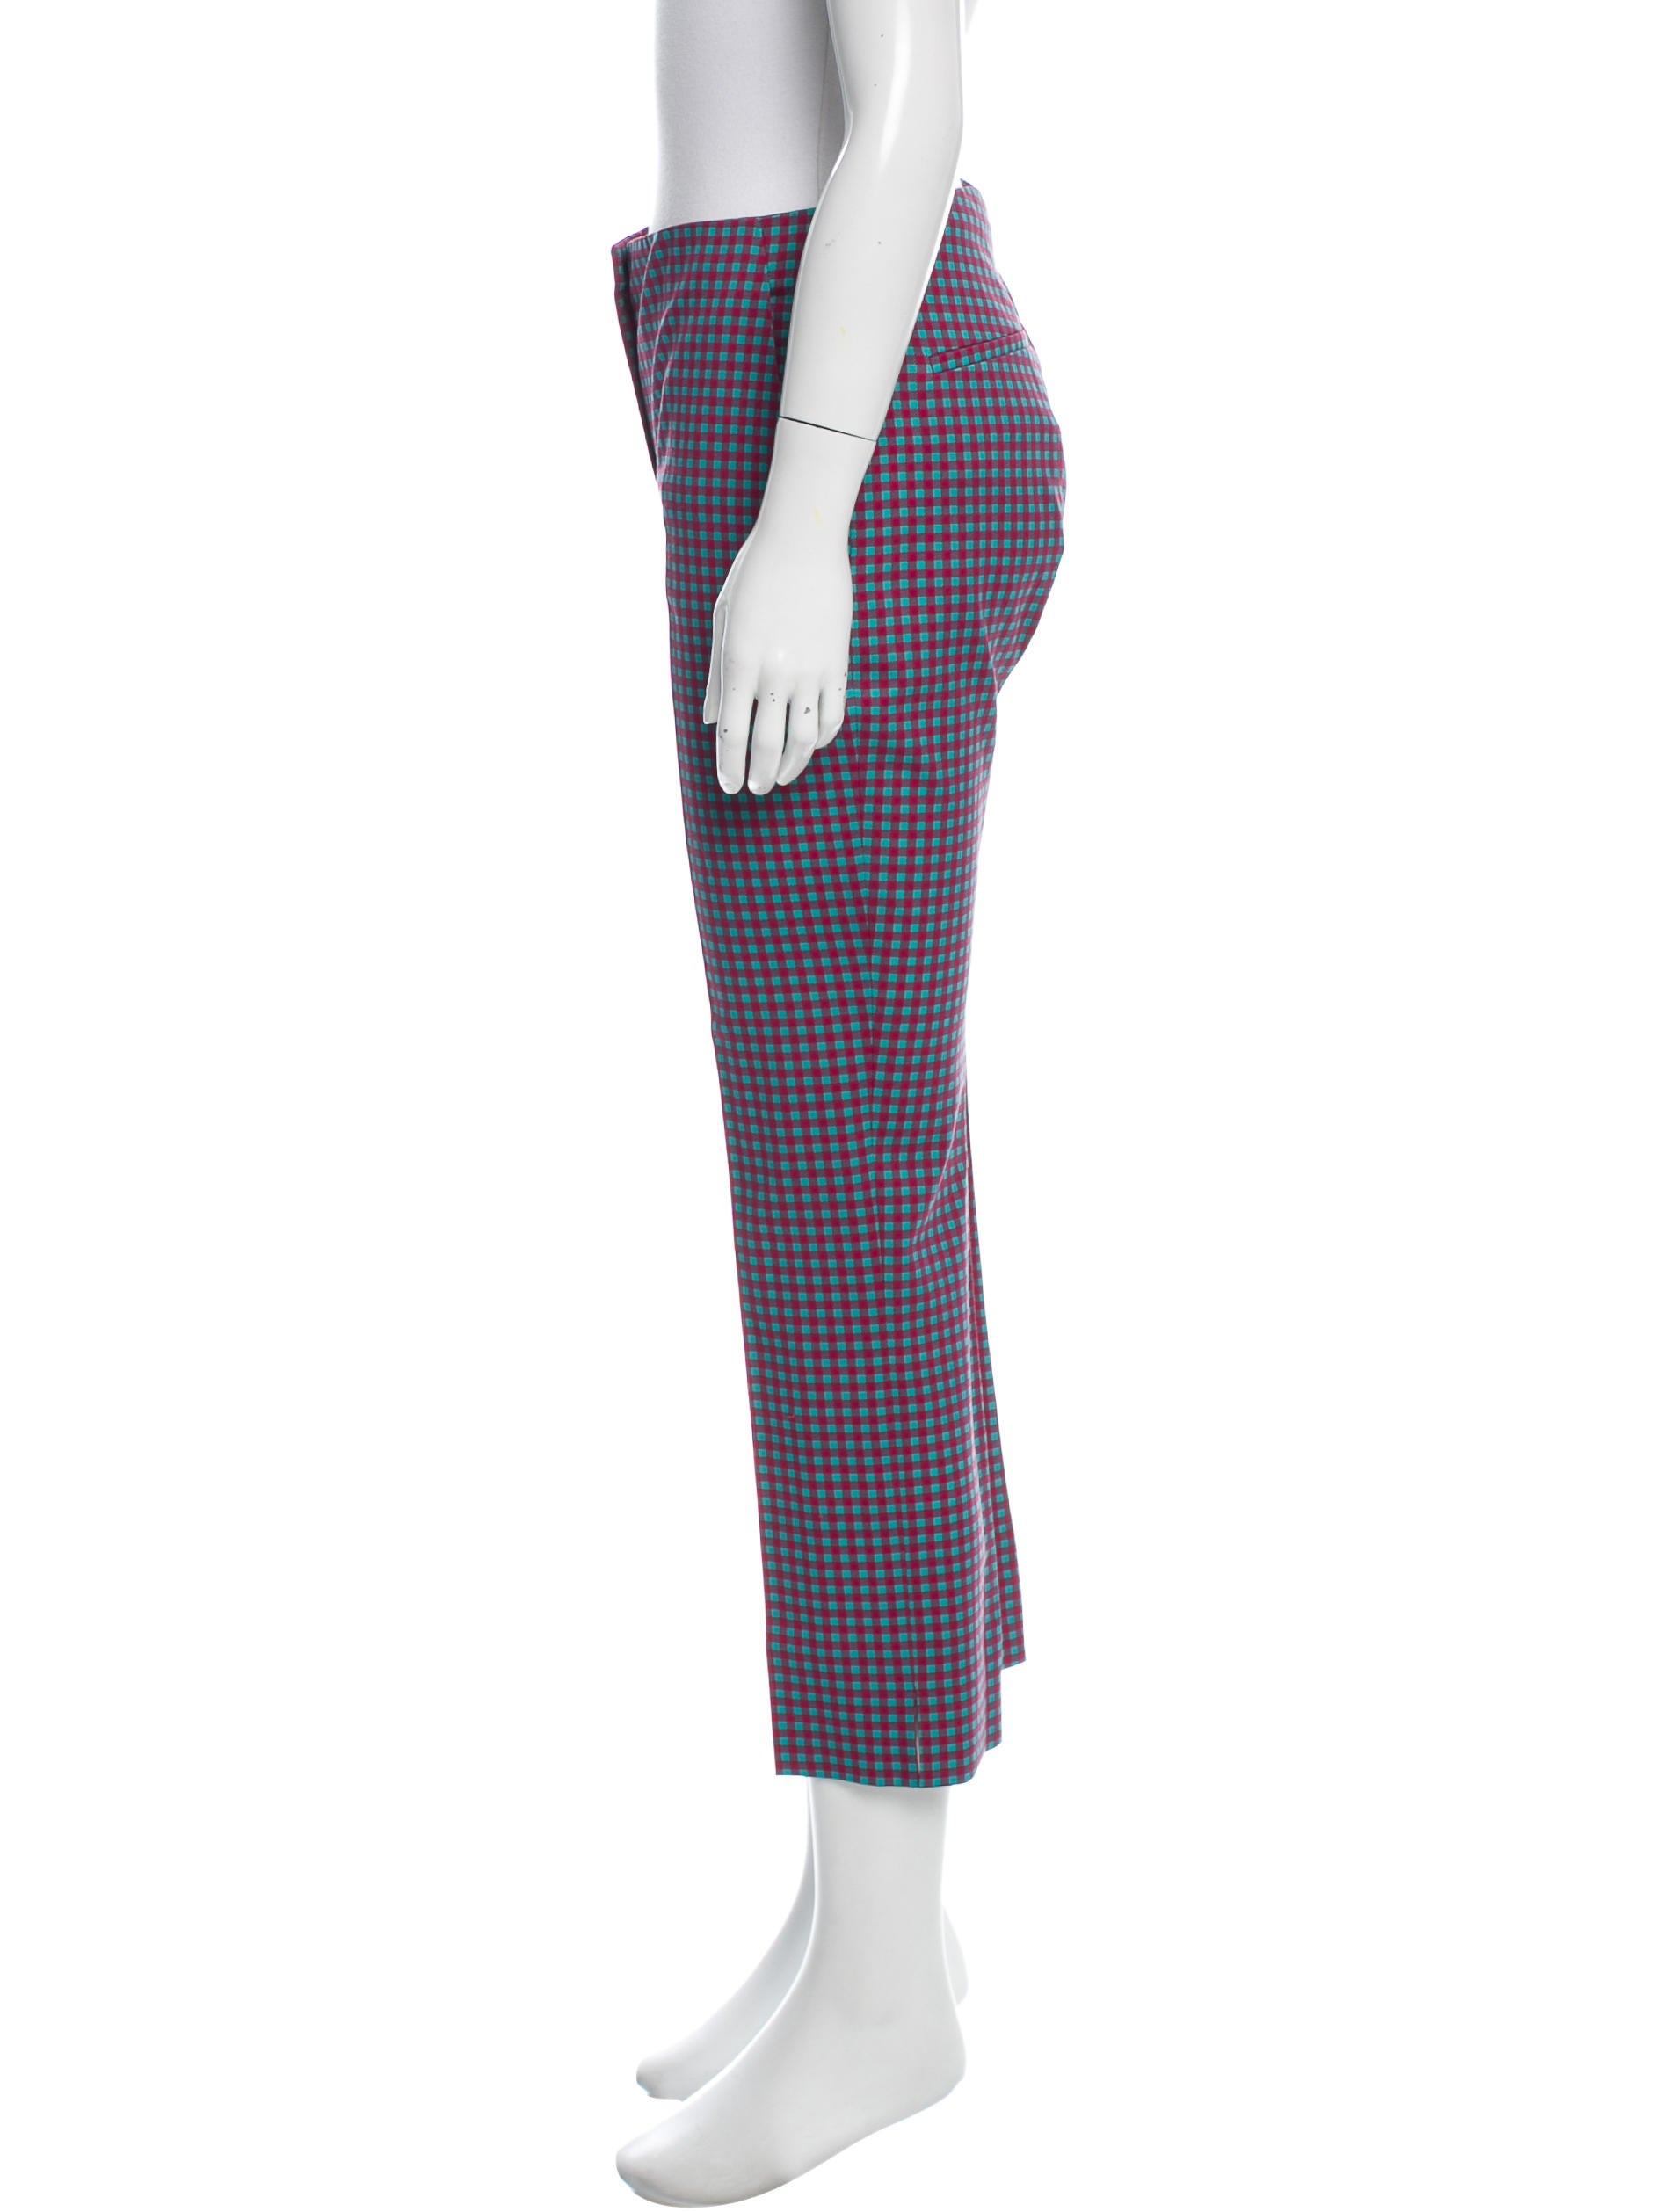 Creative Ann Taylor And Ralph Lauren Offer Wool And Knit Pants With Stretch For Added Comfort And Shape Retention Dress Pants Are Typically Worn In Neutral, Solid Colors Like Black, Gray, Brown, Navy And Cream A Subtle Plaid Or  Taller Women Can